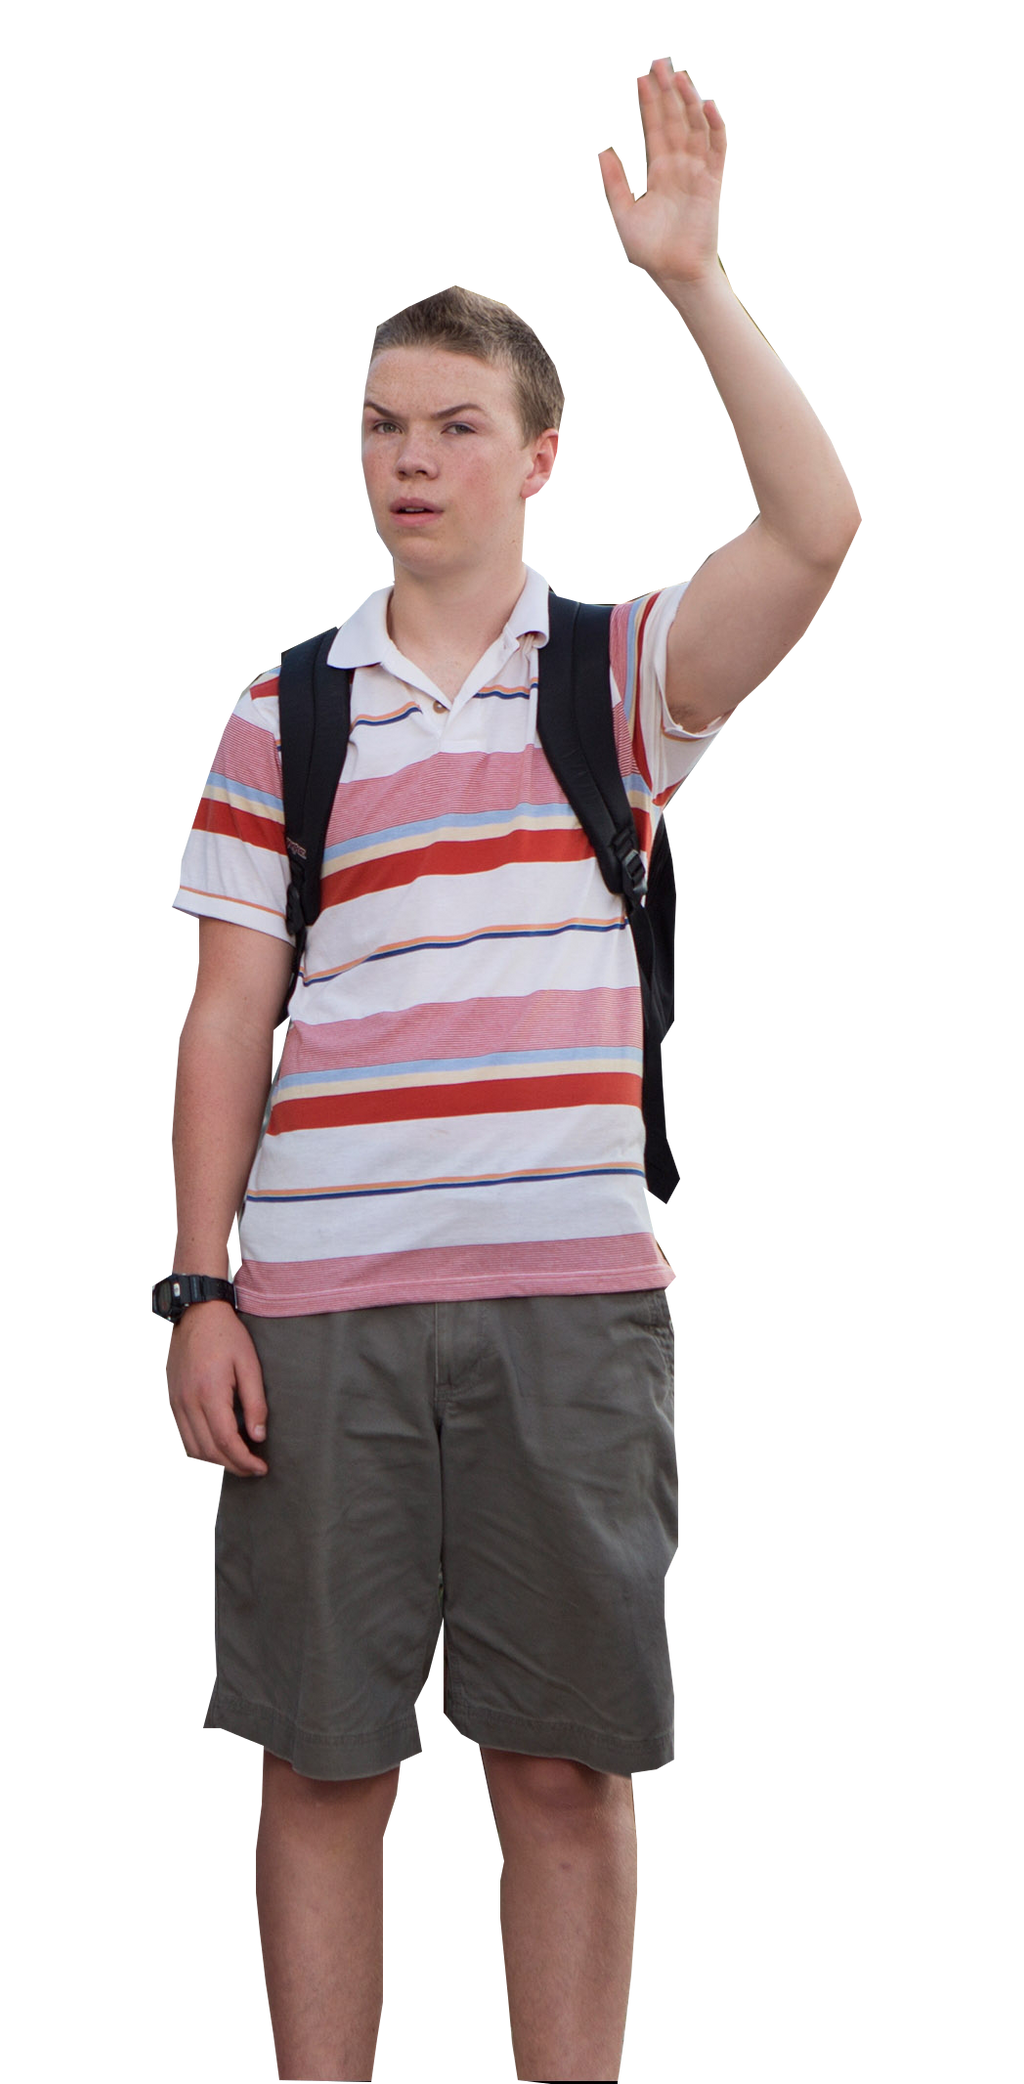 Will Poulter Png - Will Poulter PNG by itsthesuckzone on DeviantArt